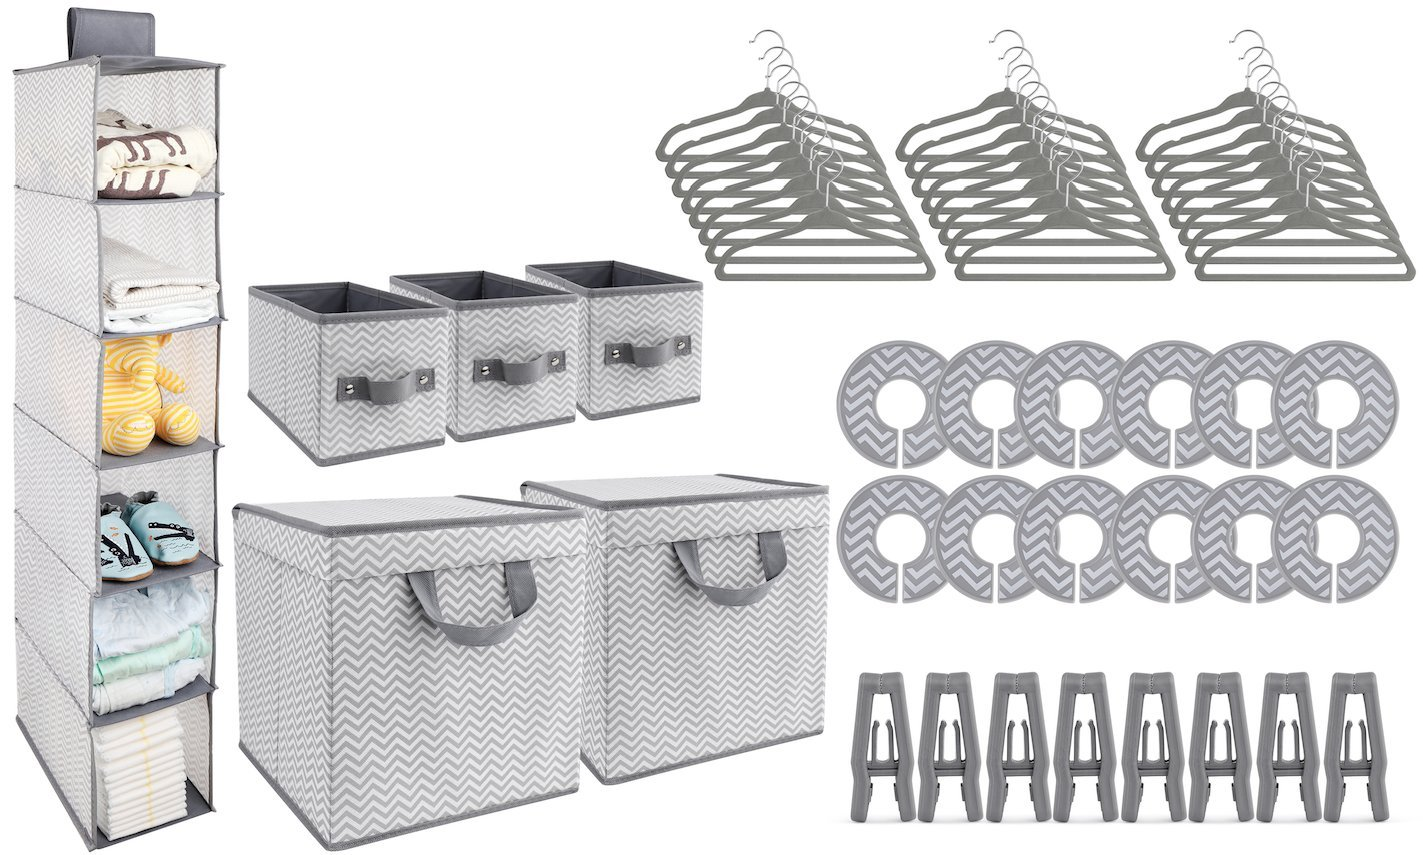 GOLOHO Nursery Organizer and Storage Closet Set (50 Pieces), Chevron Pattern, Grey and White by GOLOHO